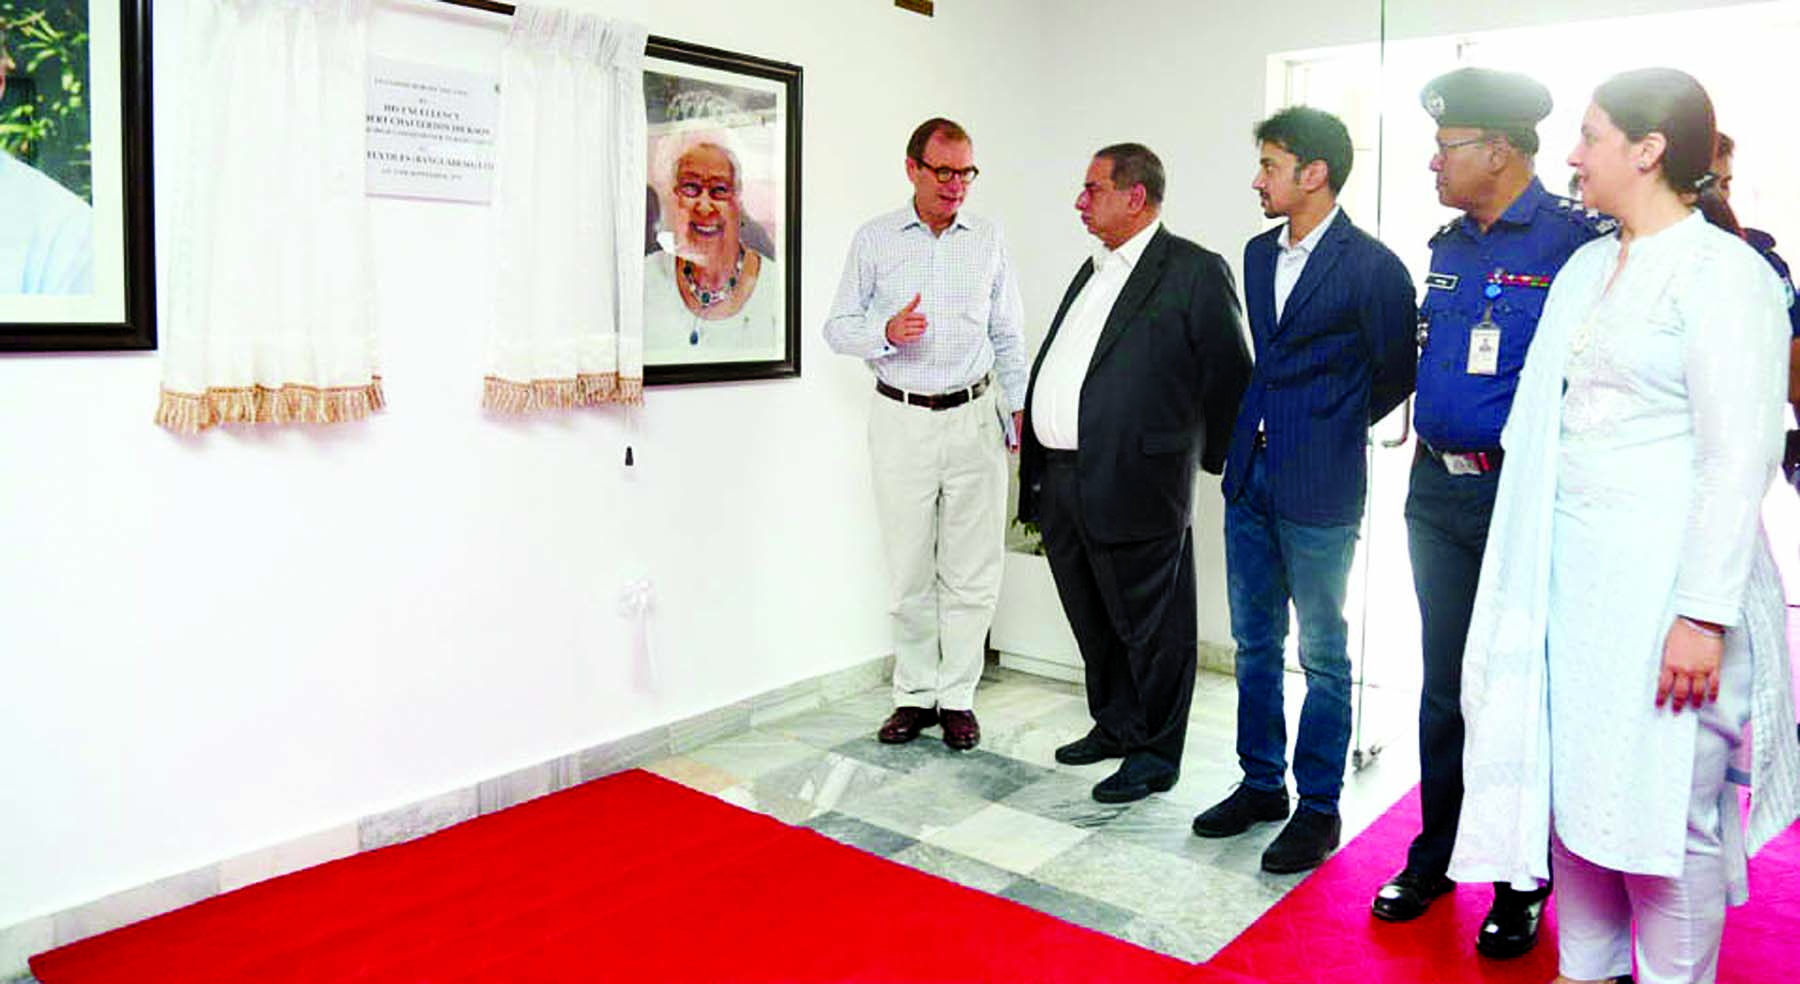 British High Commissioner to Bangladesh  Robert Chatterton Dickson and his wife Ms Teresa Albor  visited  ACS Textiles (Bangladesh) Ltd at Tetlabo, Rupgonj in Narayangonj on Wednesday.